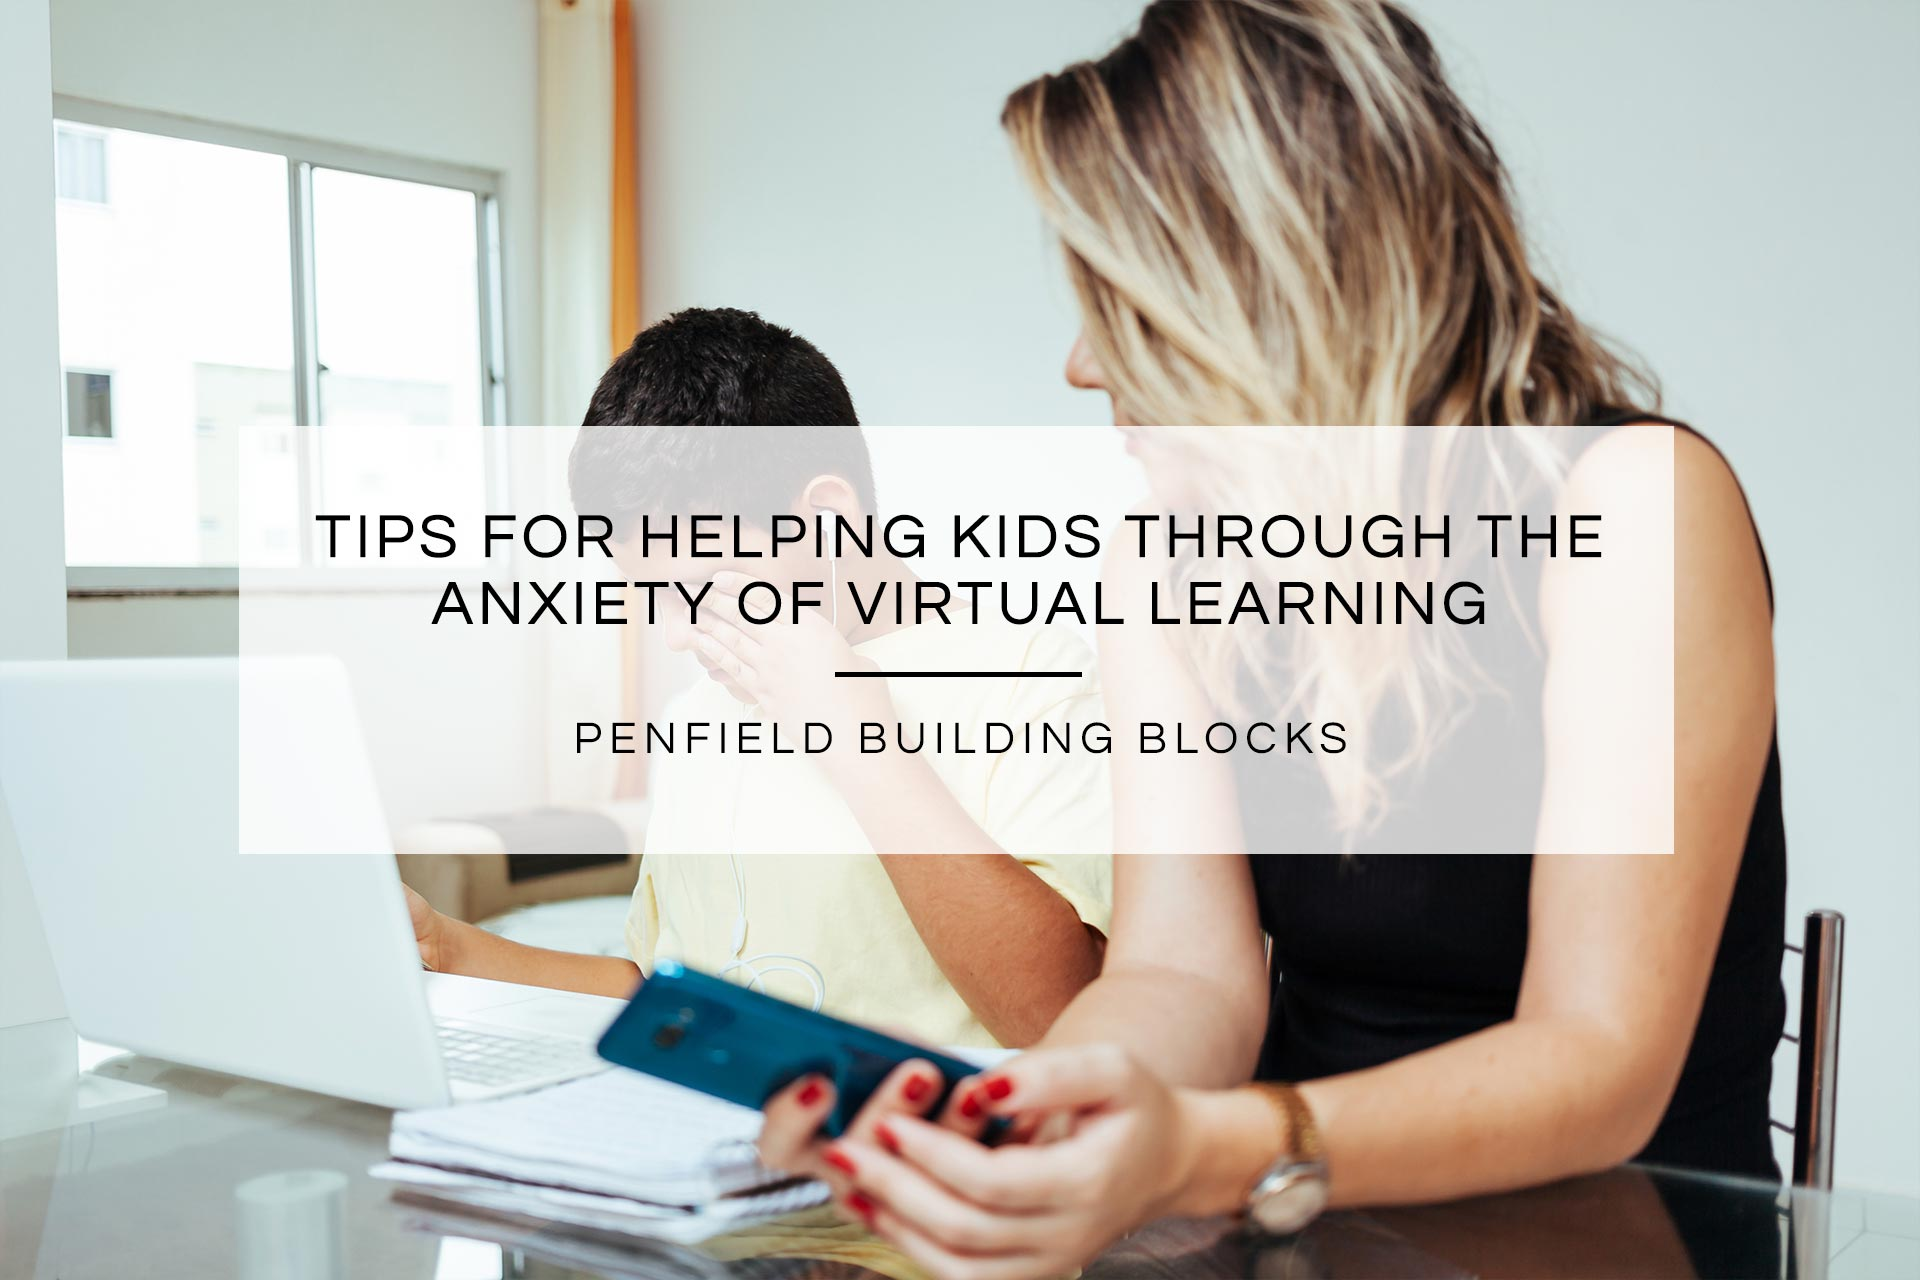 Tips for Helping Kids through the Anxiety of Virtual Learning | Penfield Building Blocks